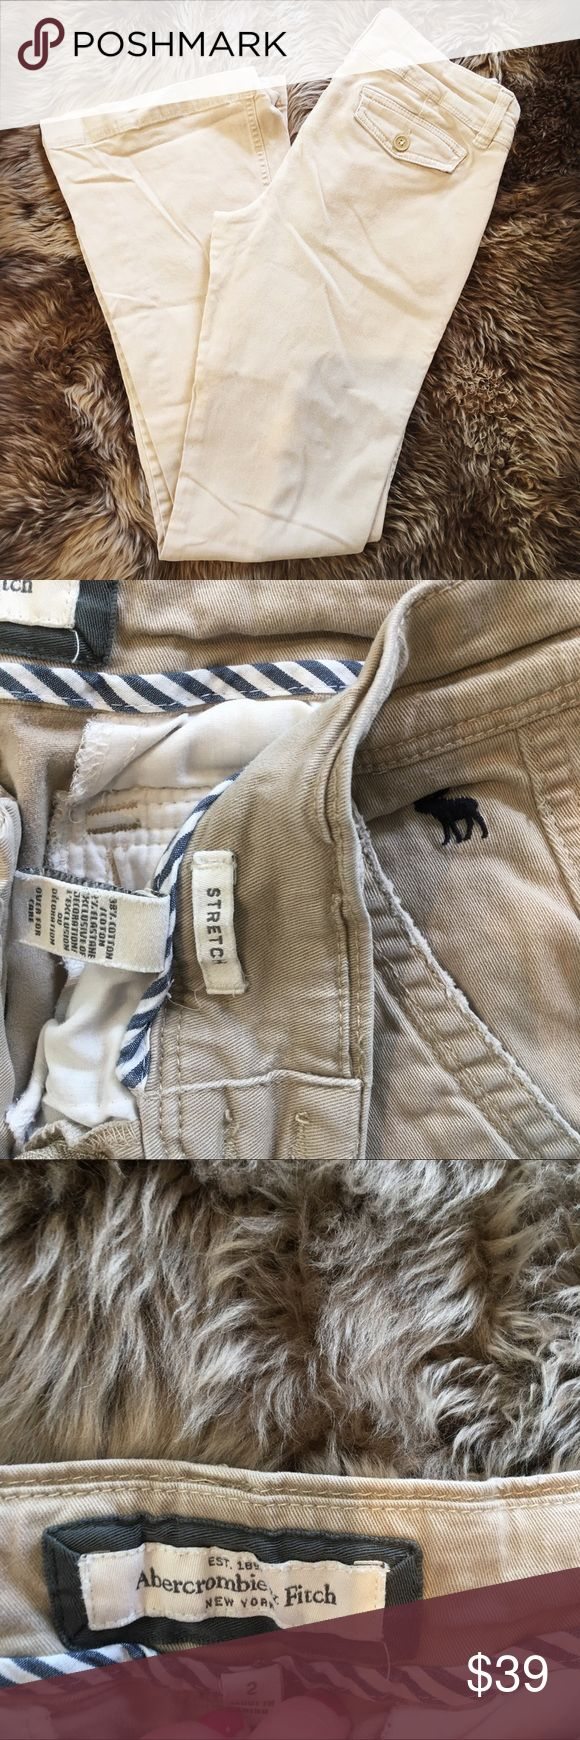 Abercrombie and Fitch Pants Abercrombie and Fitch tan slacks size 2 in excellent condition Abercrombie & Fitch Pants Trousers